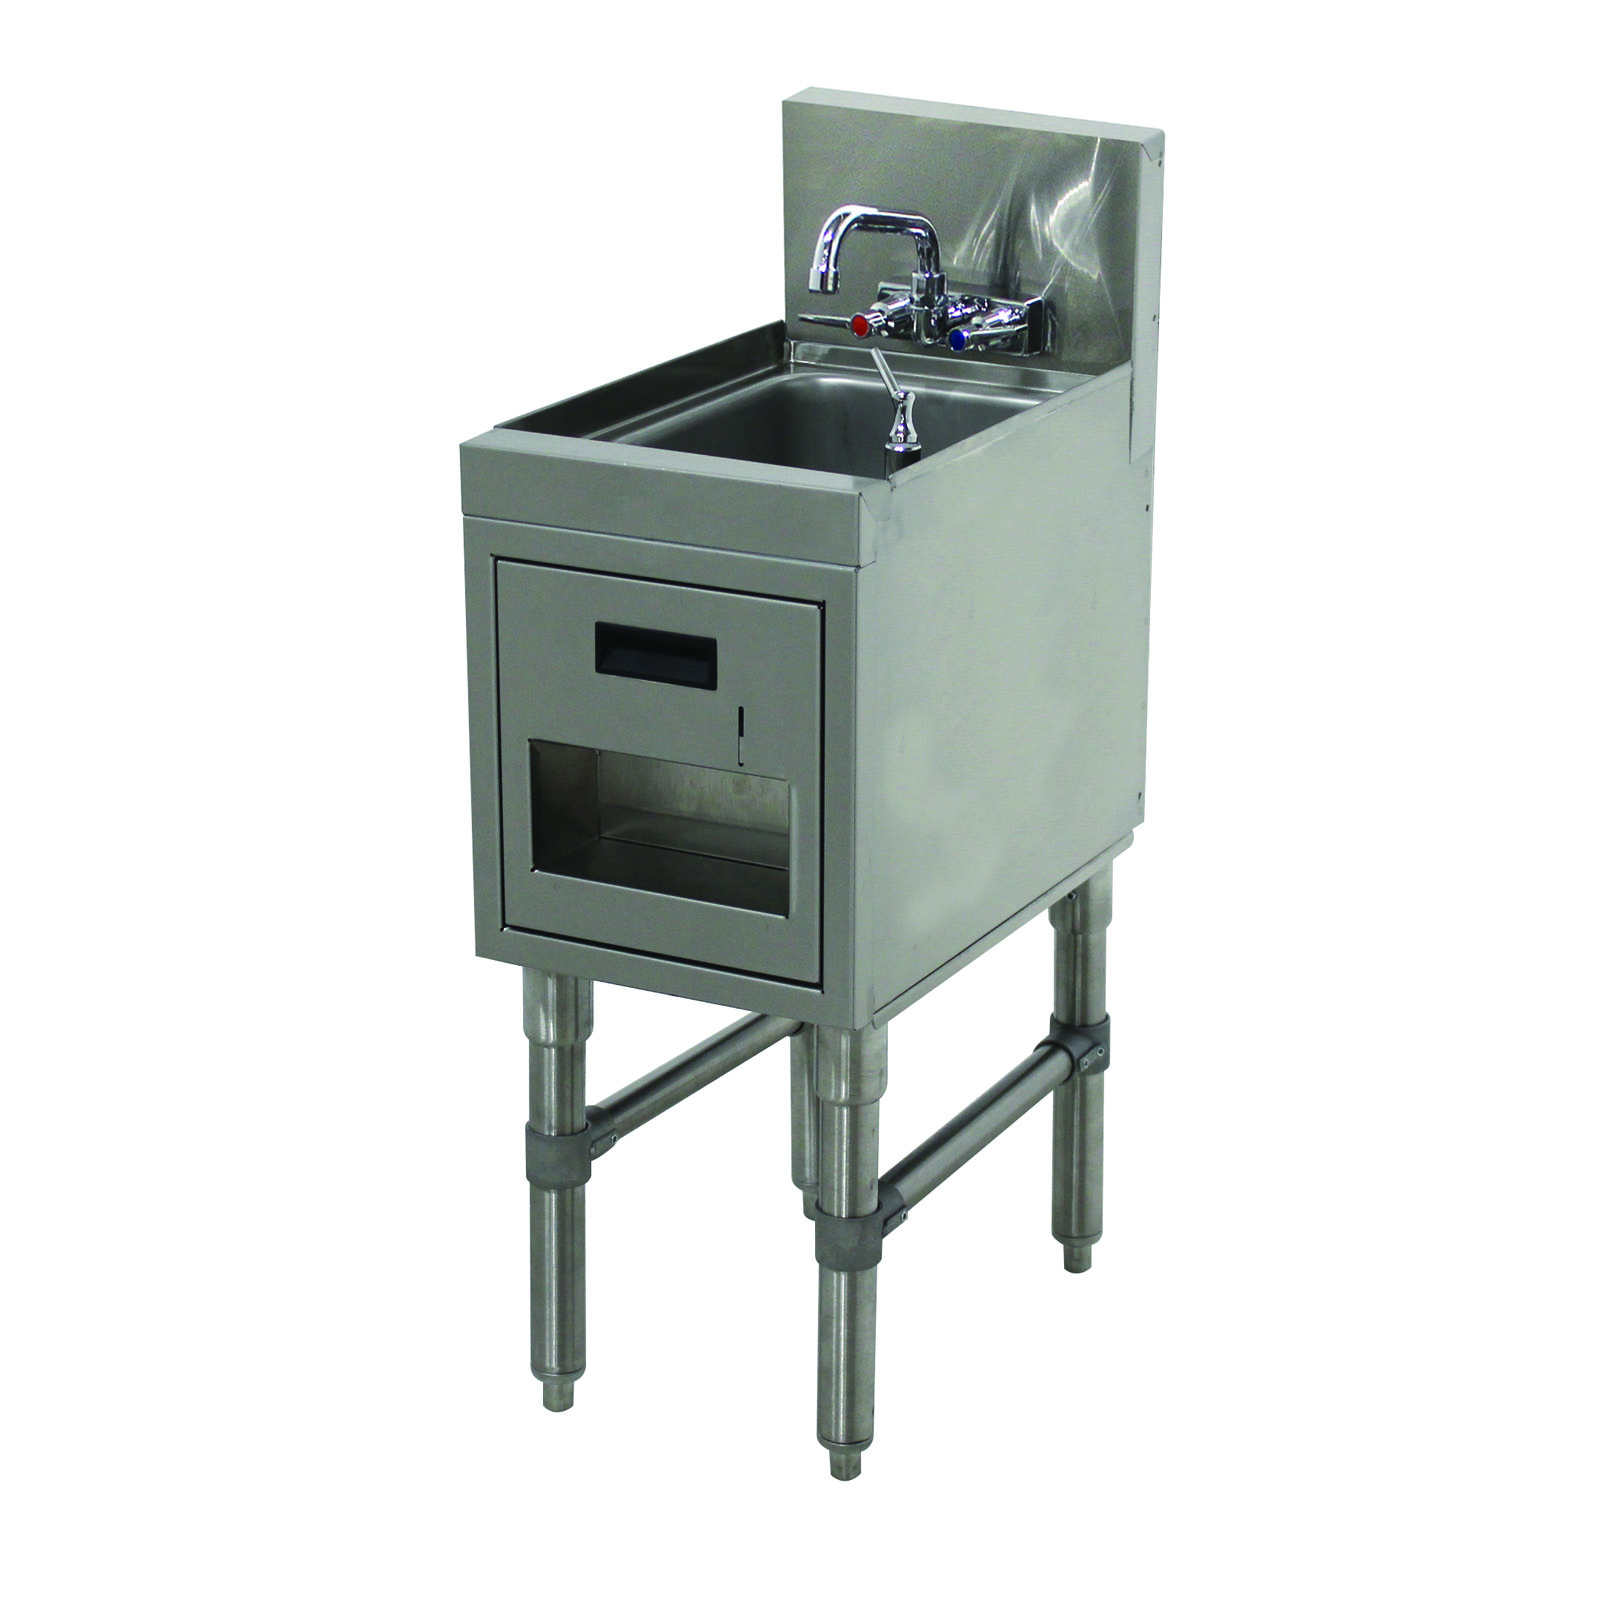 Advance Tabco PRHSST-19-12 underbar hand sink unit